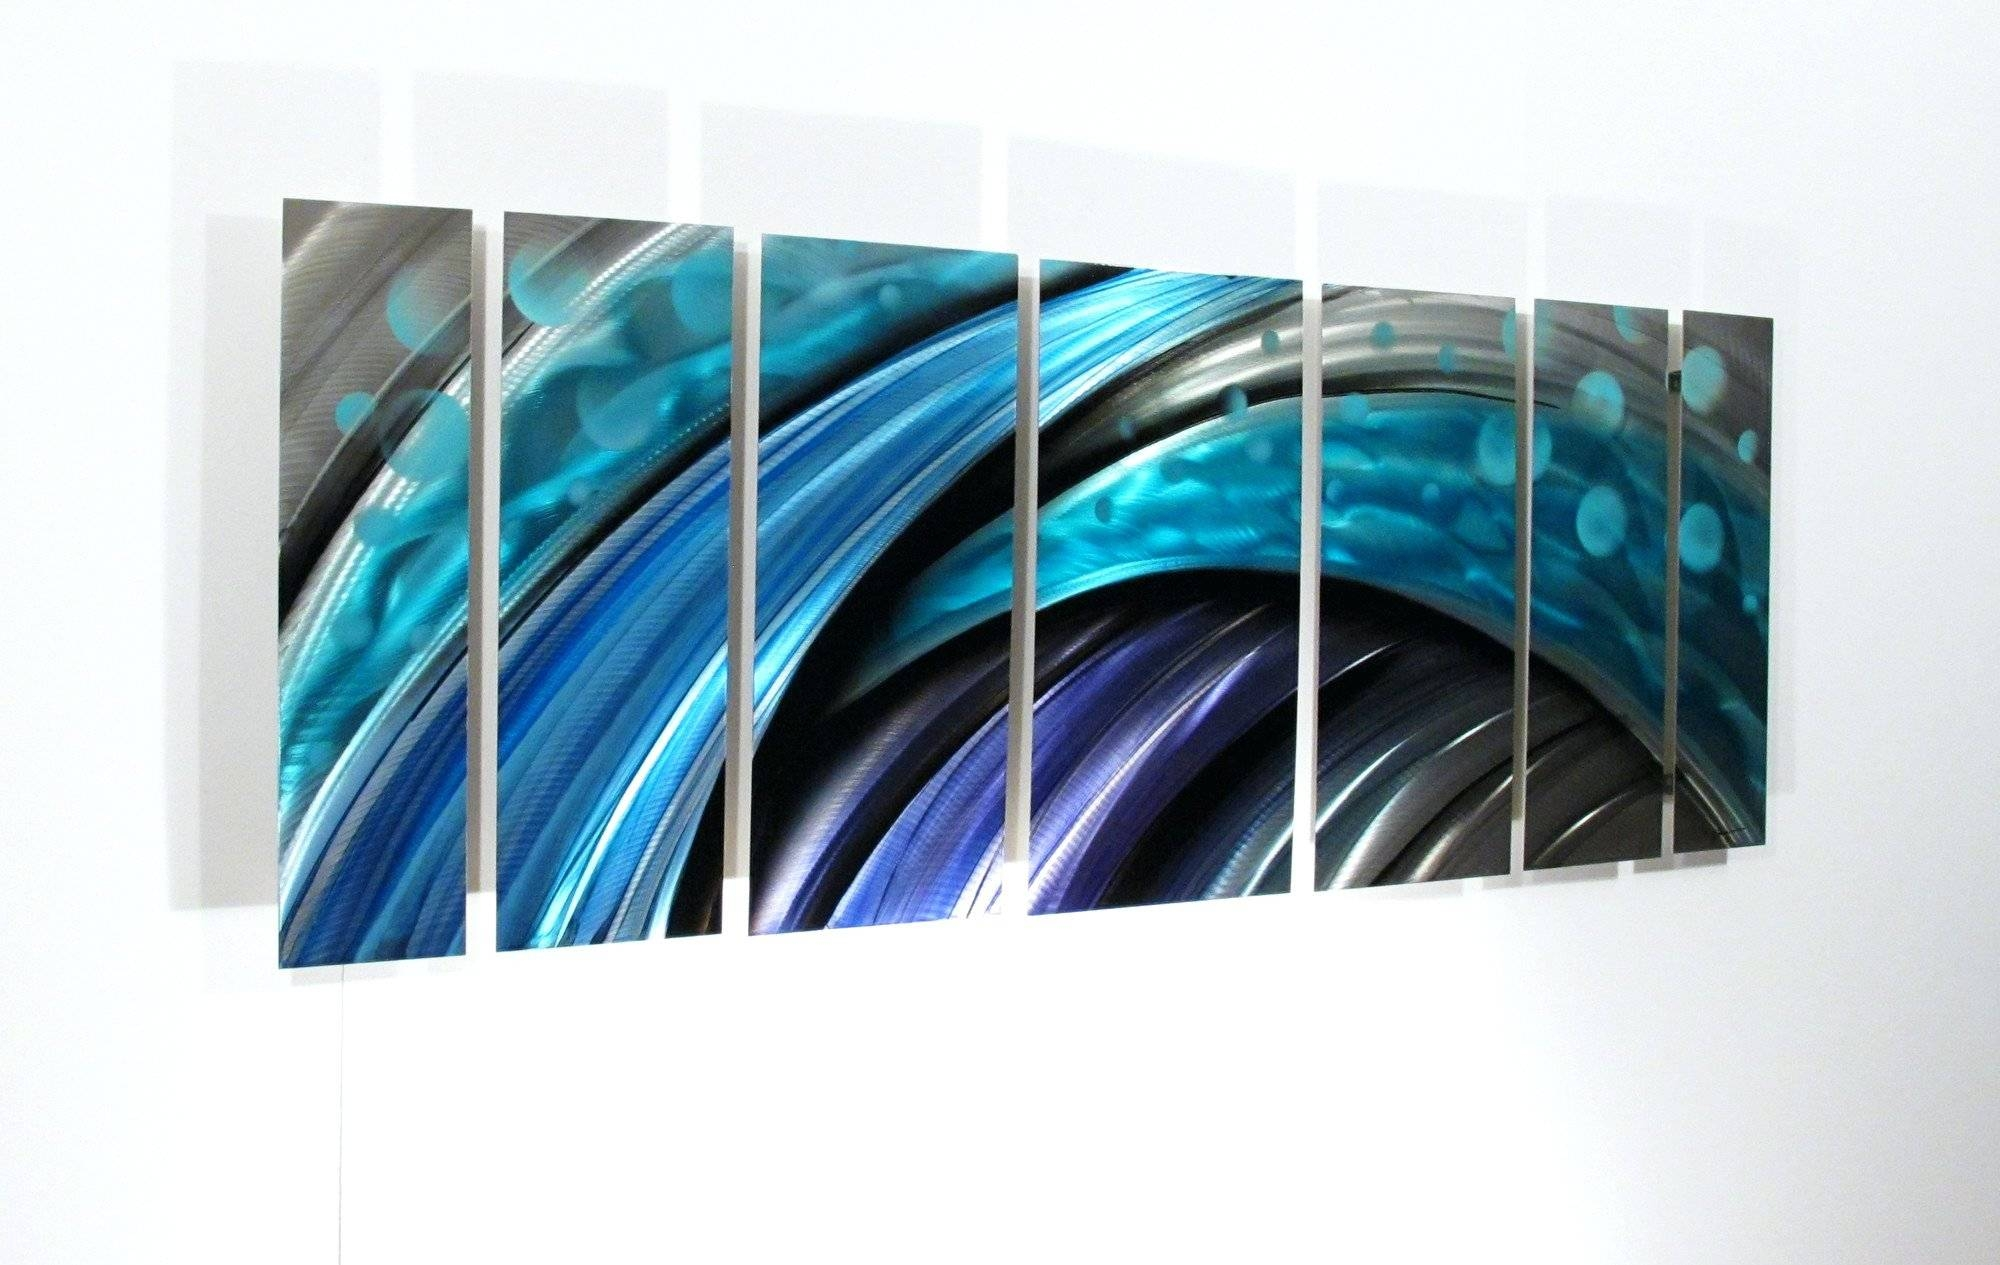 Wall Arts ~ Extra Large Metal Wall Art Abstract Metal Wall Art Inside 2017 Extra Large Metal Wall Art (View 10 of 20)